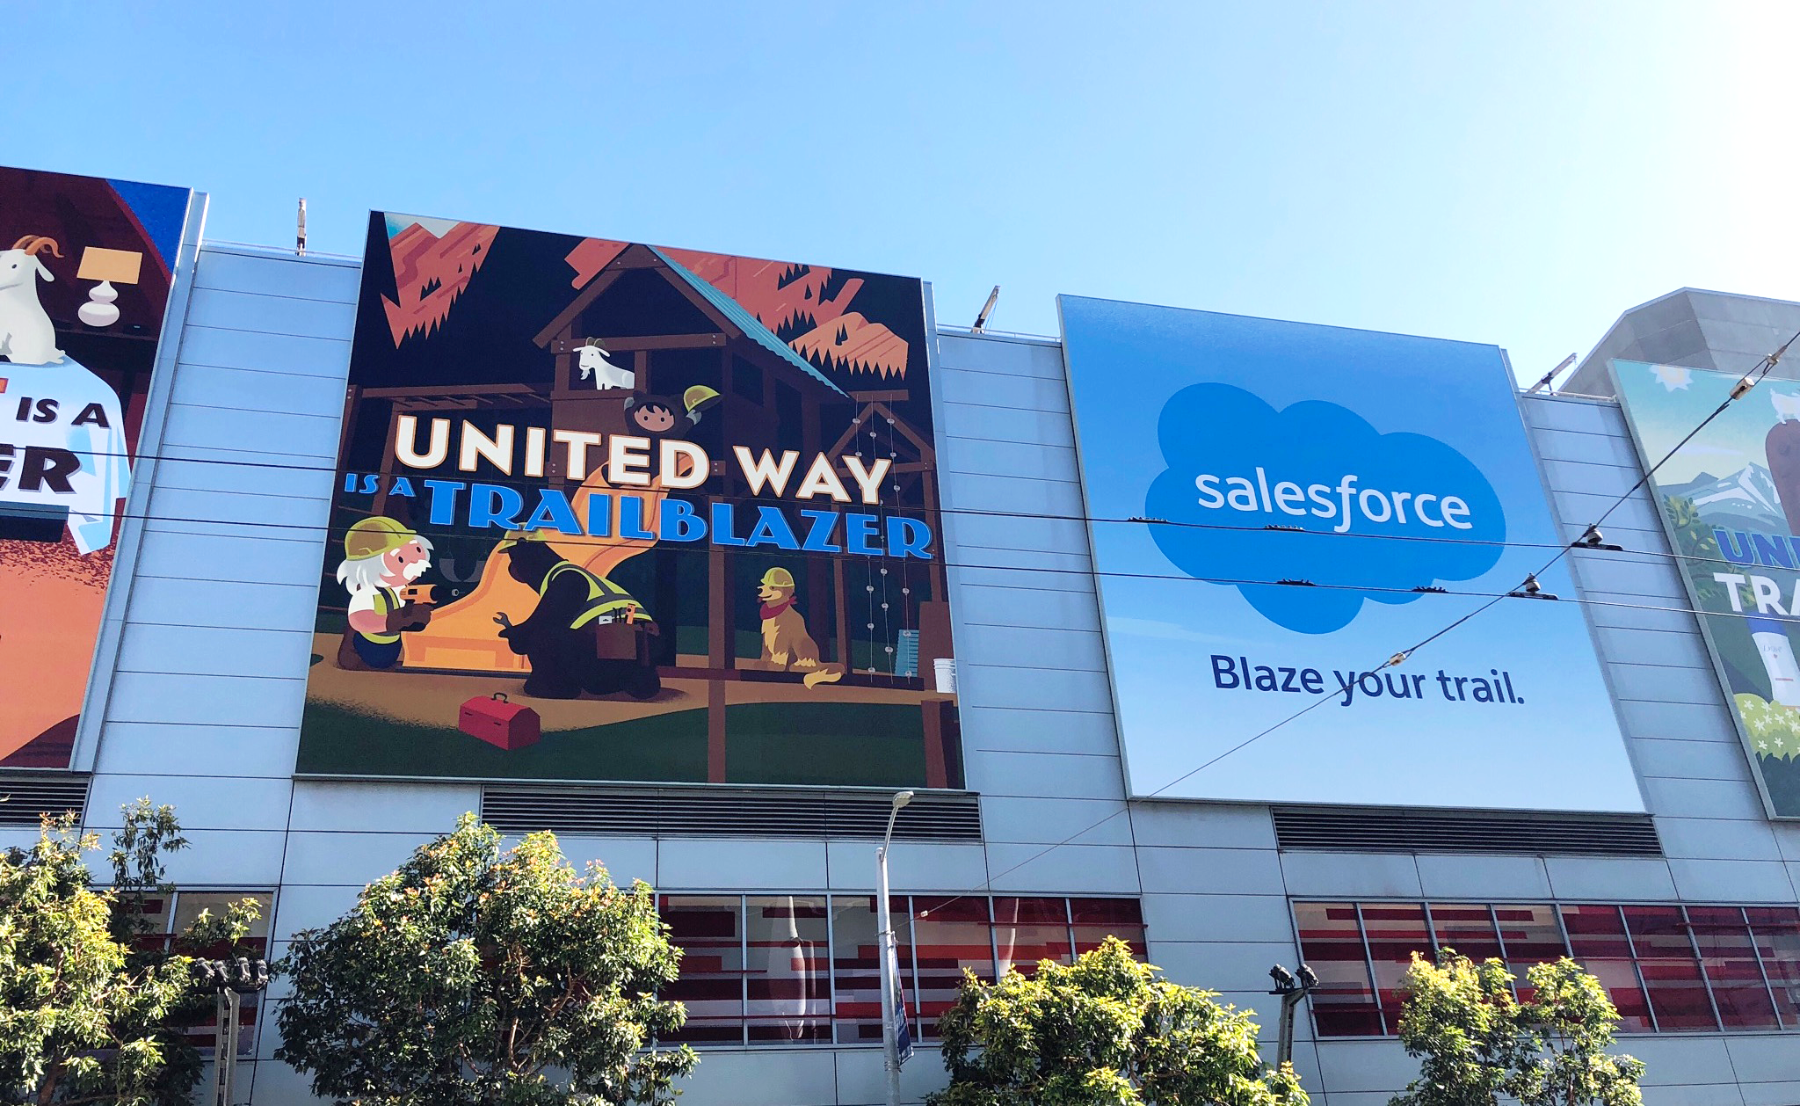 Dreamforce underscores United Way's partnership with Salesforce.org to create the game-changing Salesforce.org Philanthropy Cloud platform.